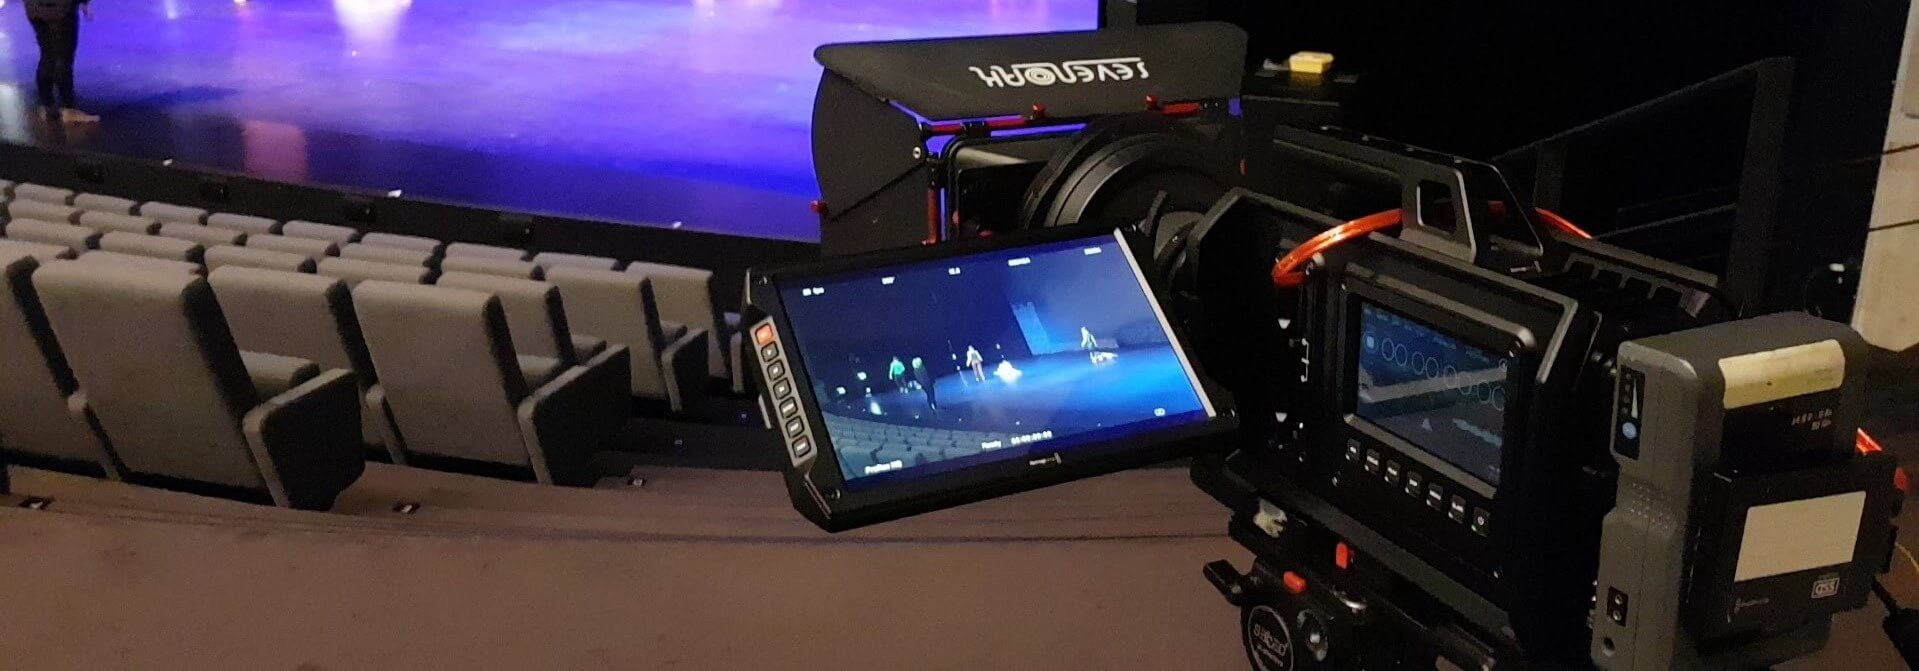 Blackmagic Ursa 4k Ef This Article Is About The Blackmagic By Tim Vervoort Medium